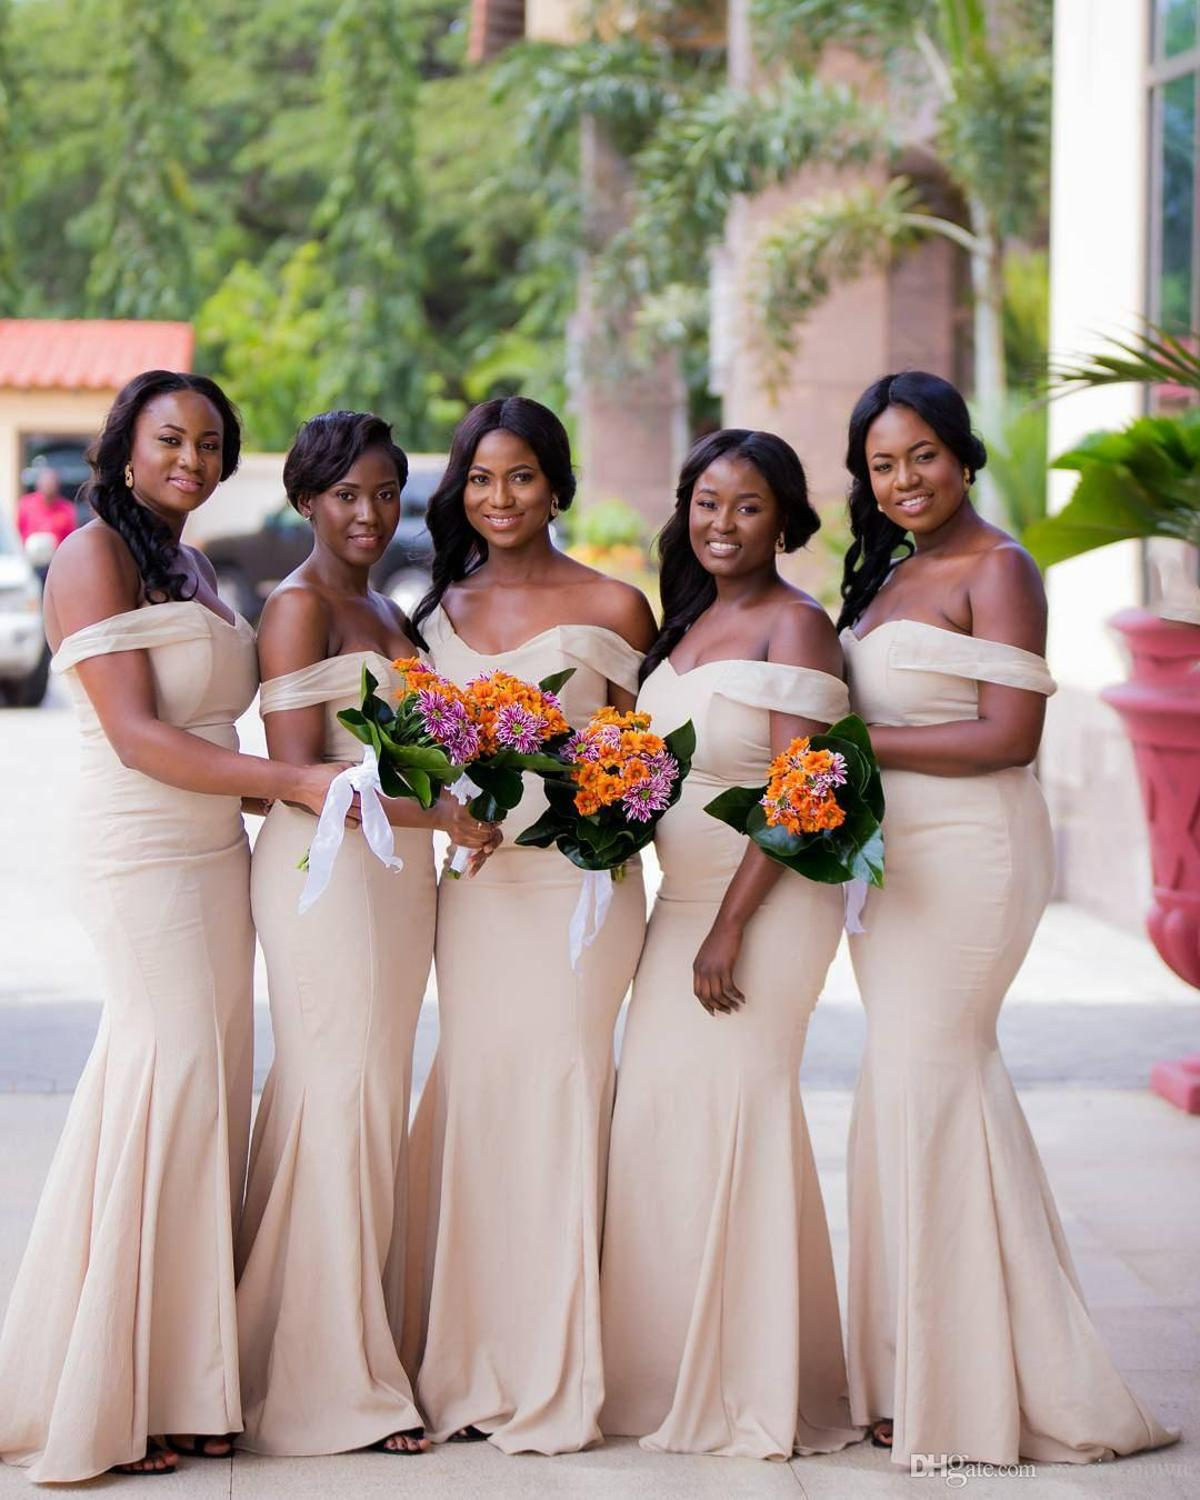 Elegant 2019 Cheap Bridesmaid Dresses Under 50 Mermaid Off The Shoulder Long Wedding Party Dresses For Women